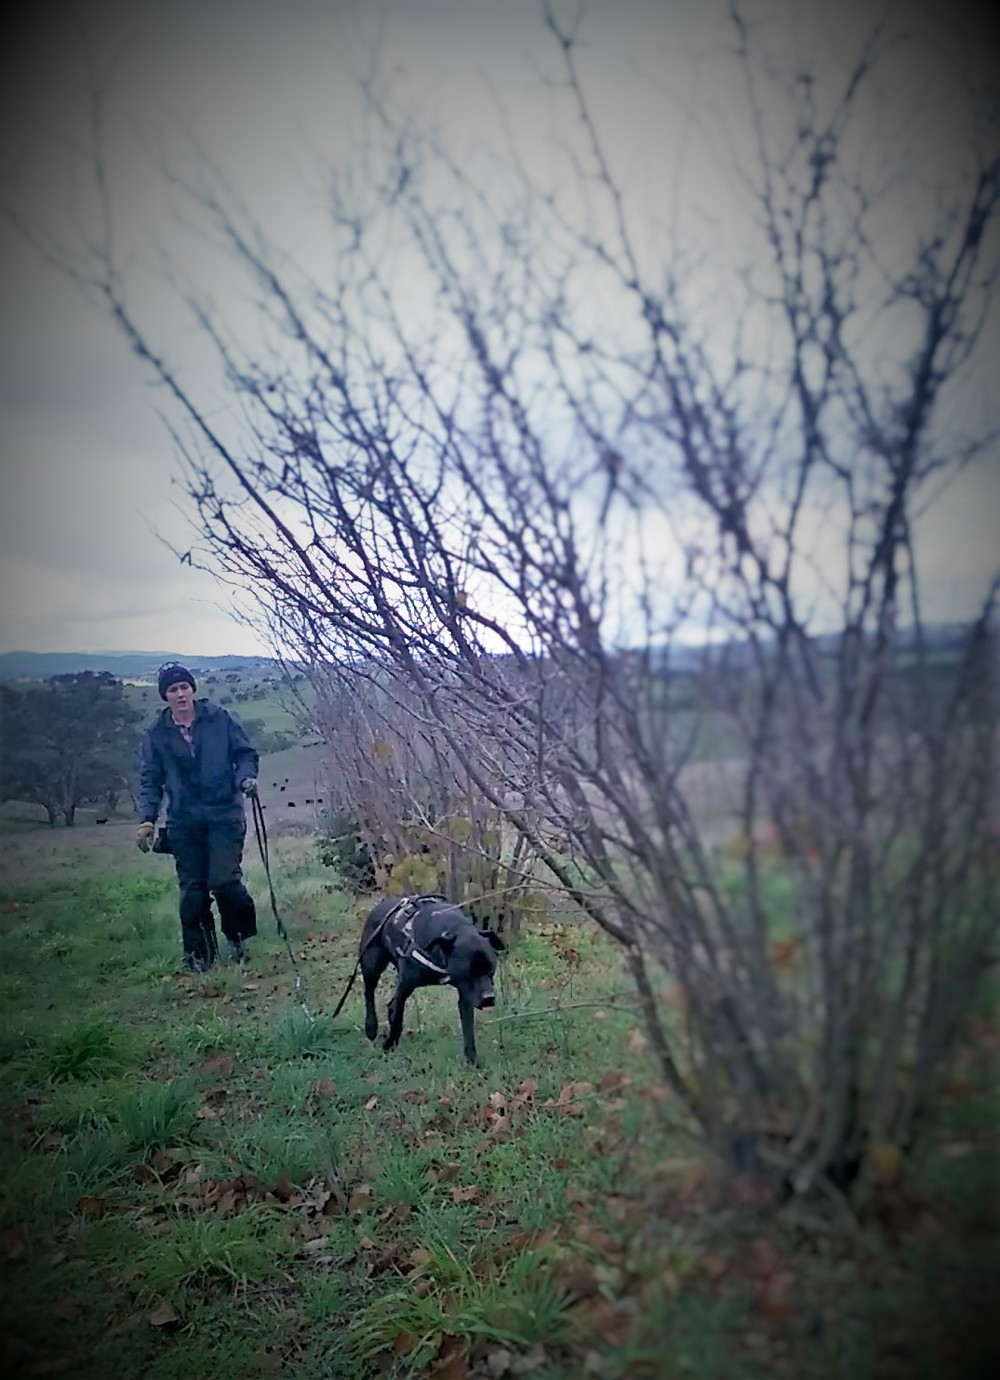 The truffle hunt.